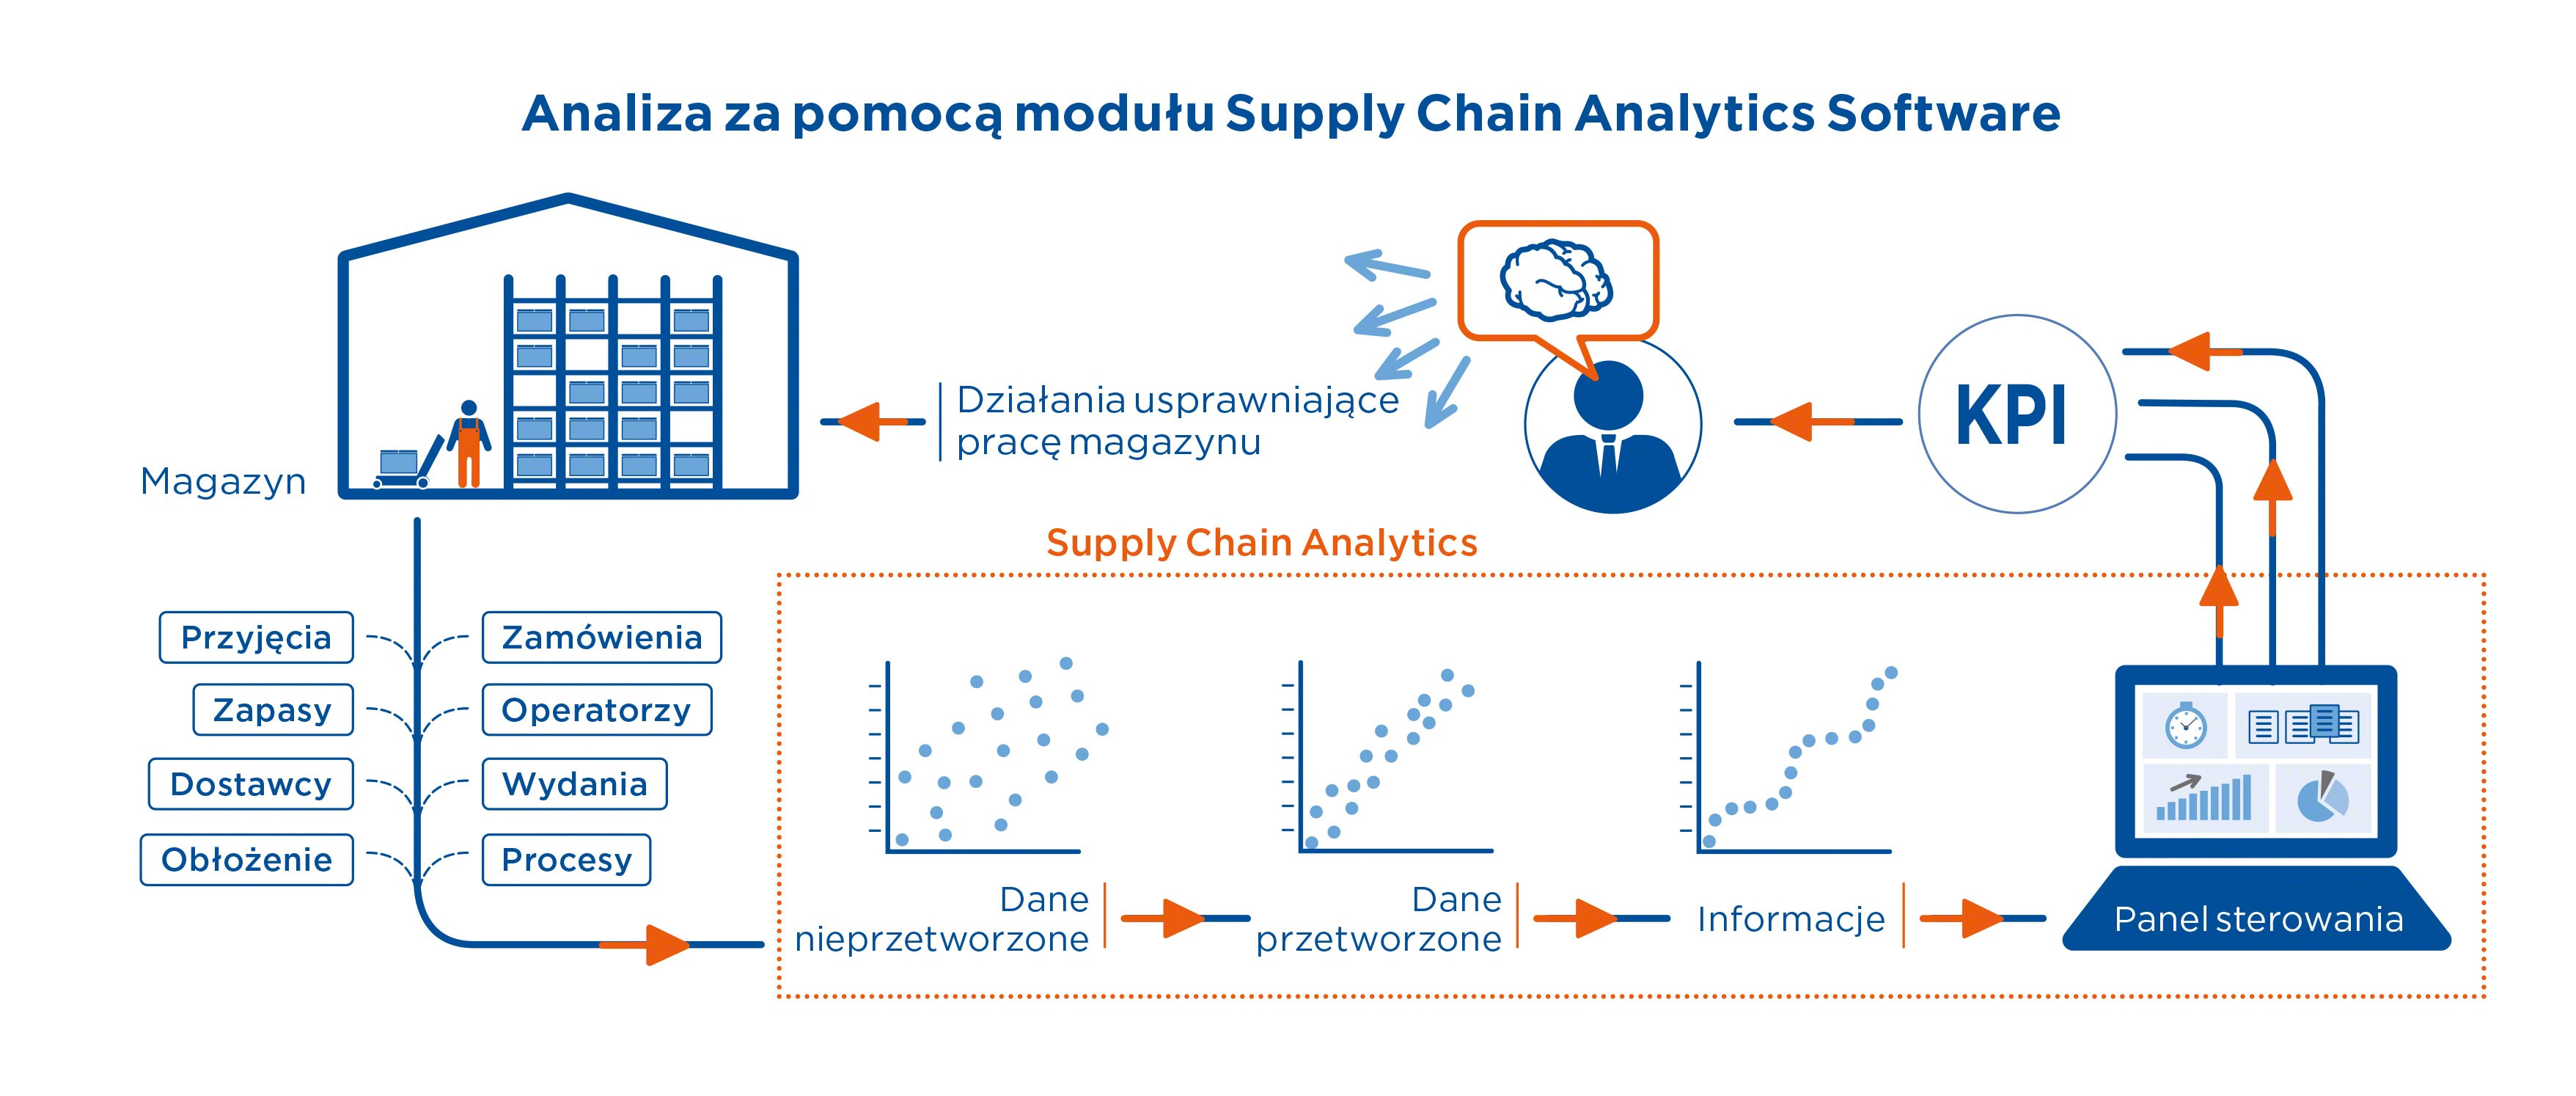 Analiza za pomocą modułu Supply Chain Analytics Software